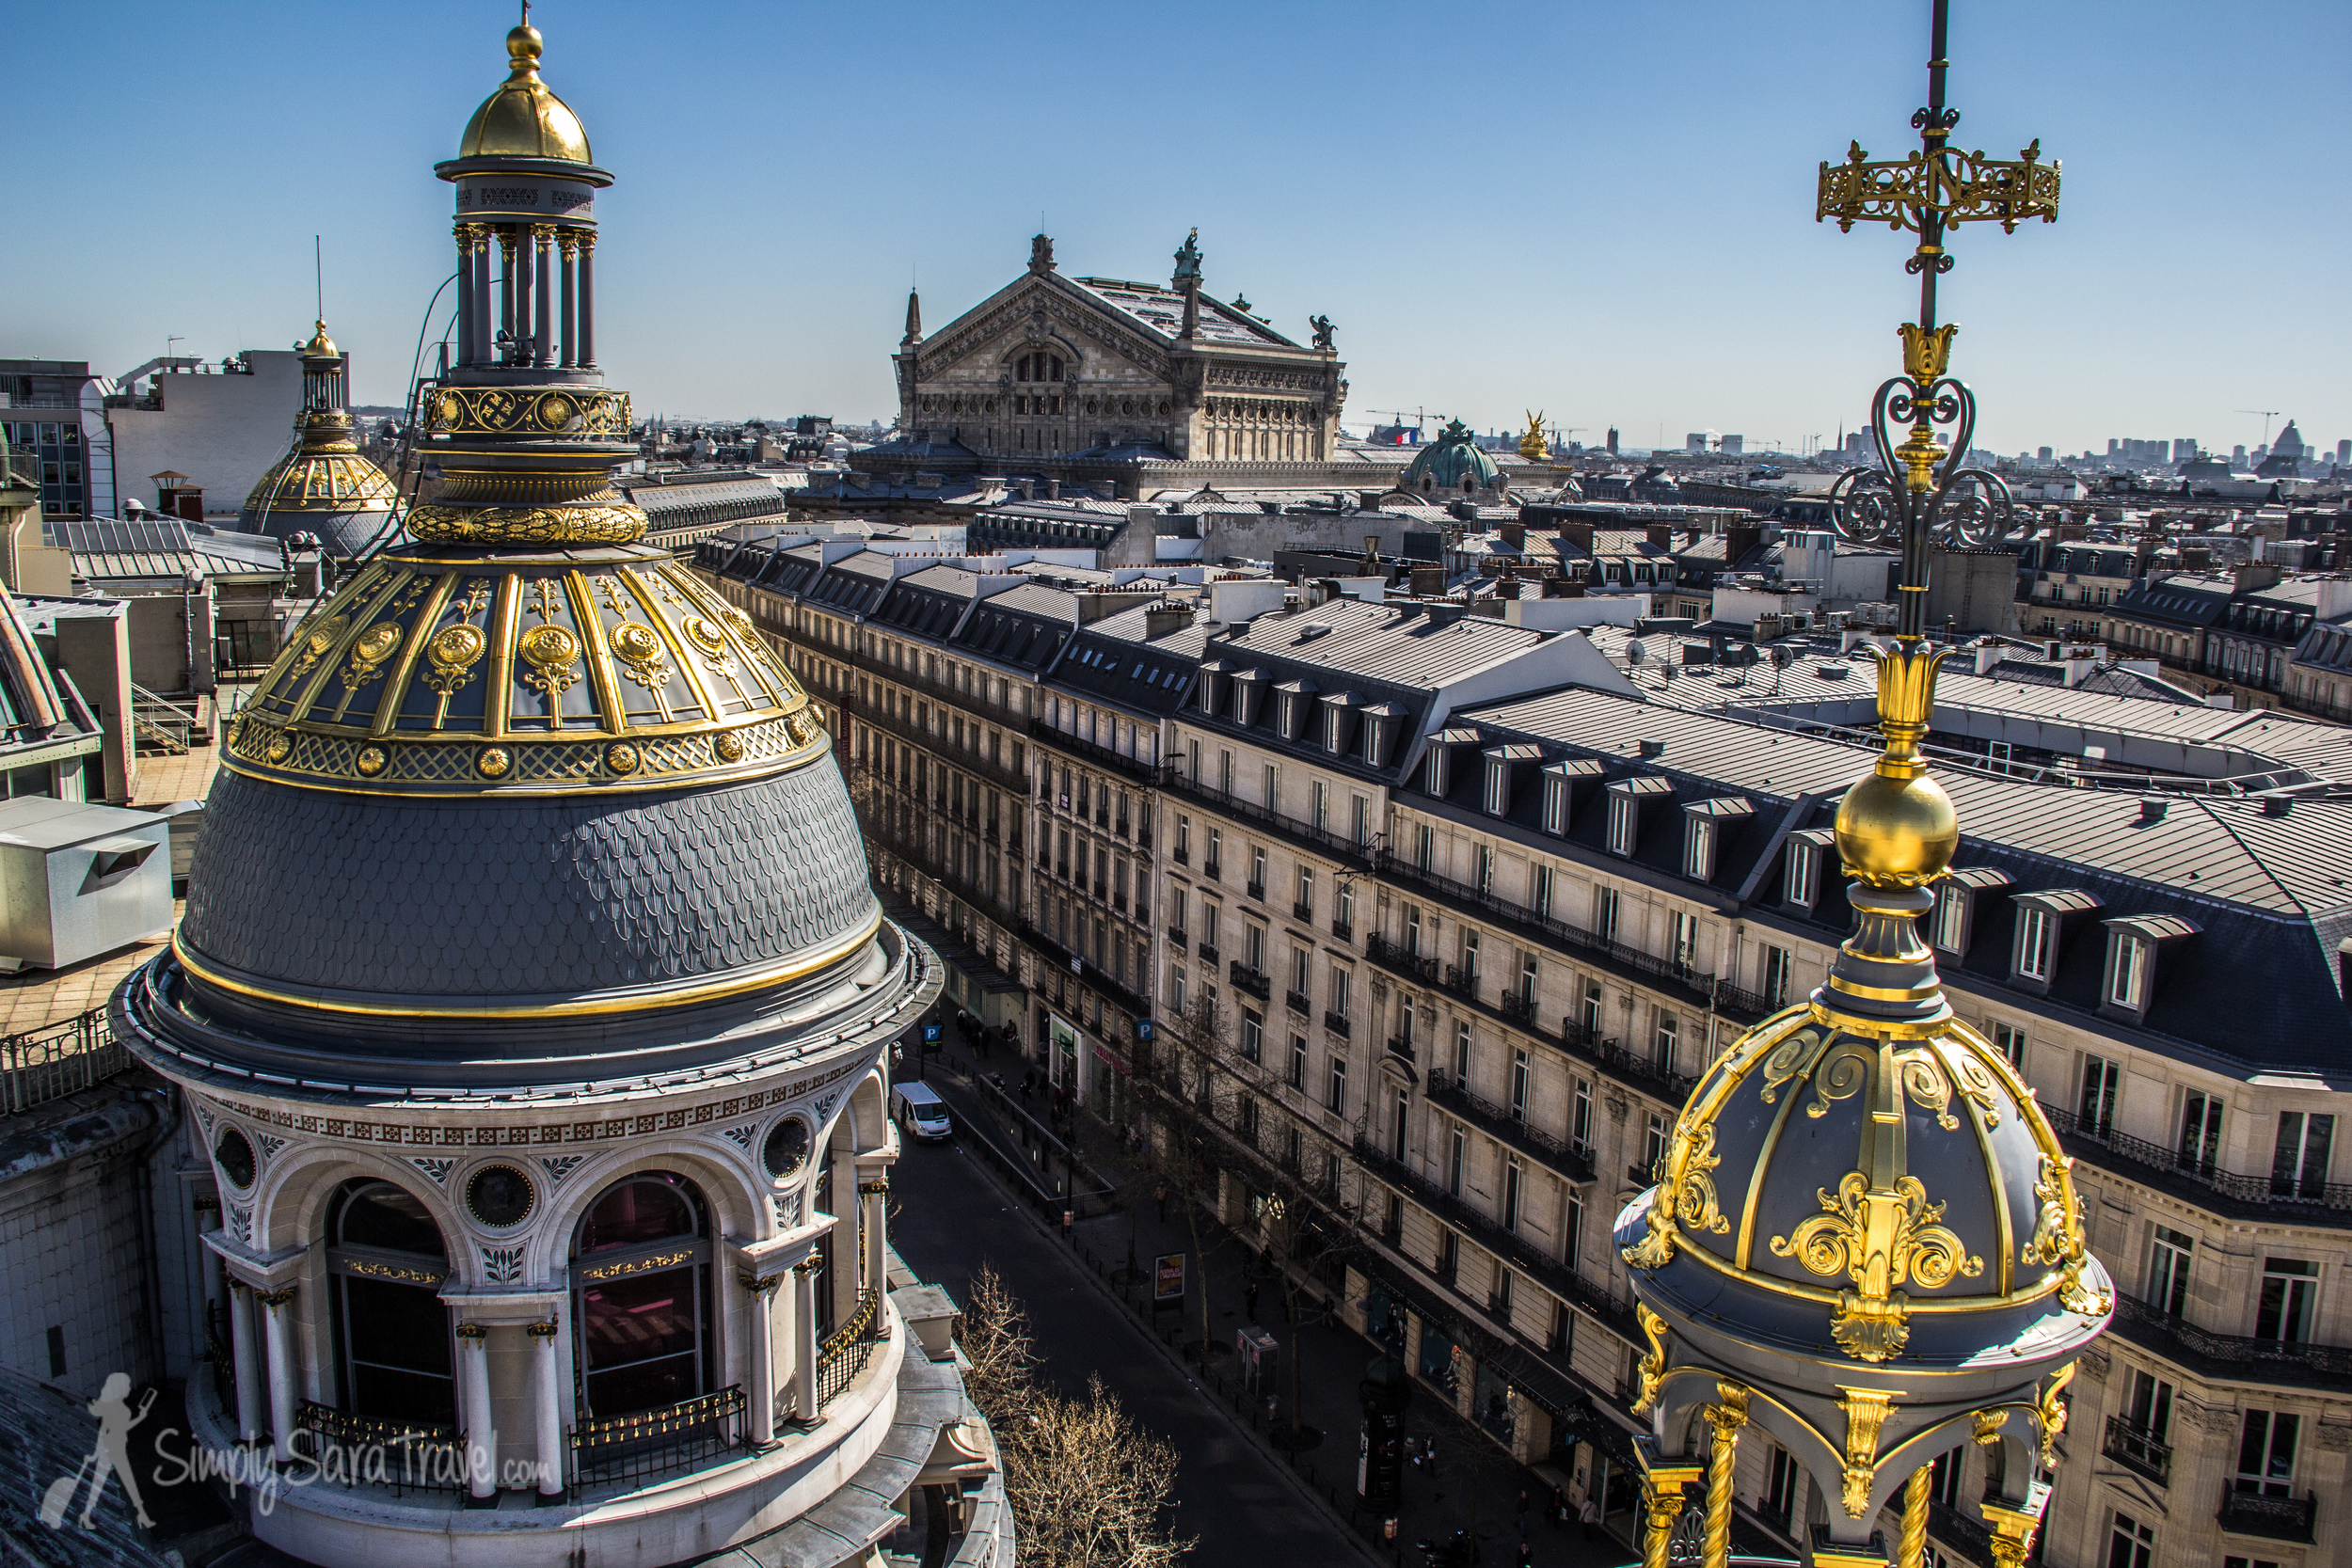 Those pretty golden domes with the Palais Garnier  in the background